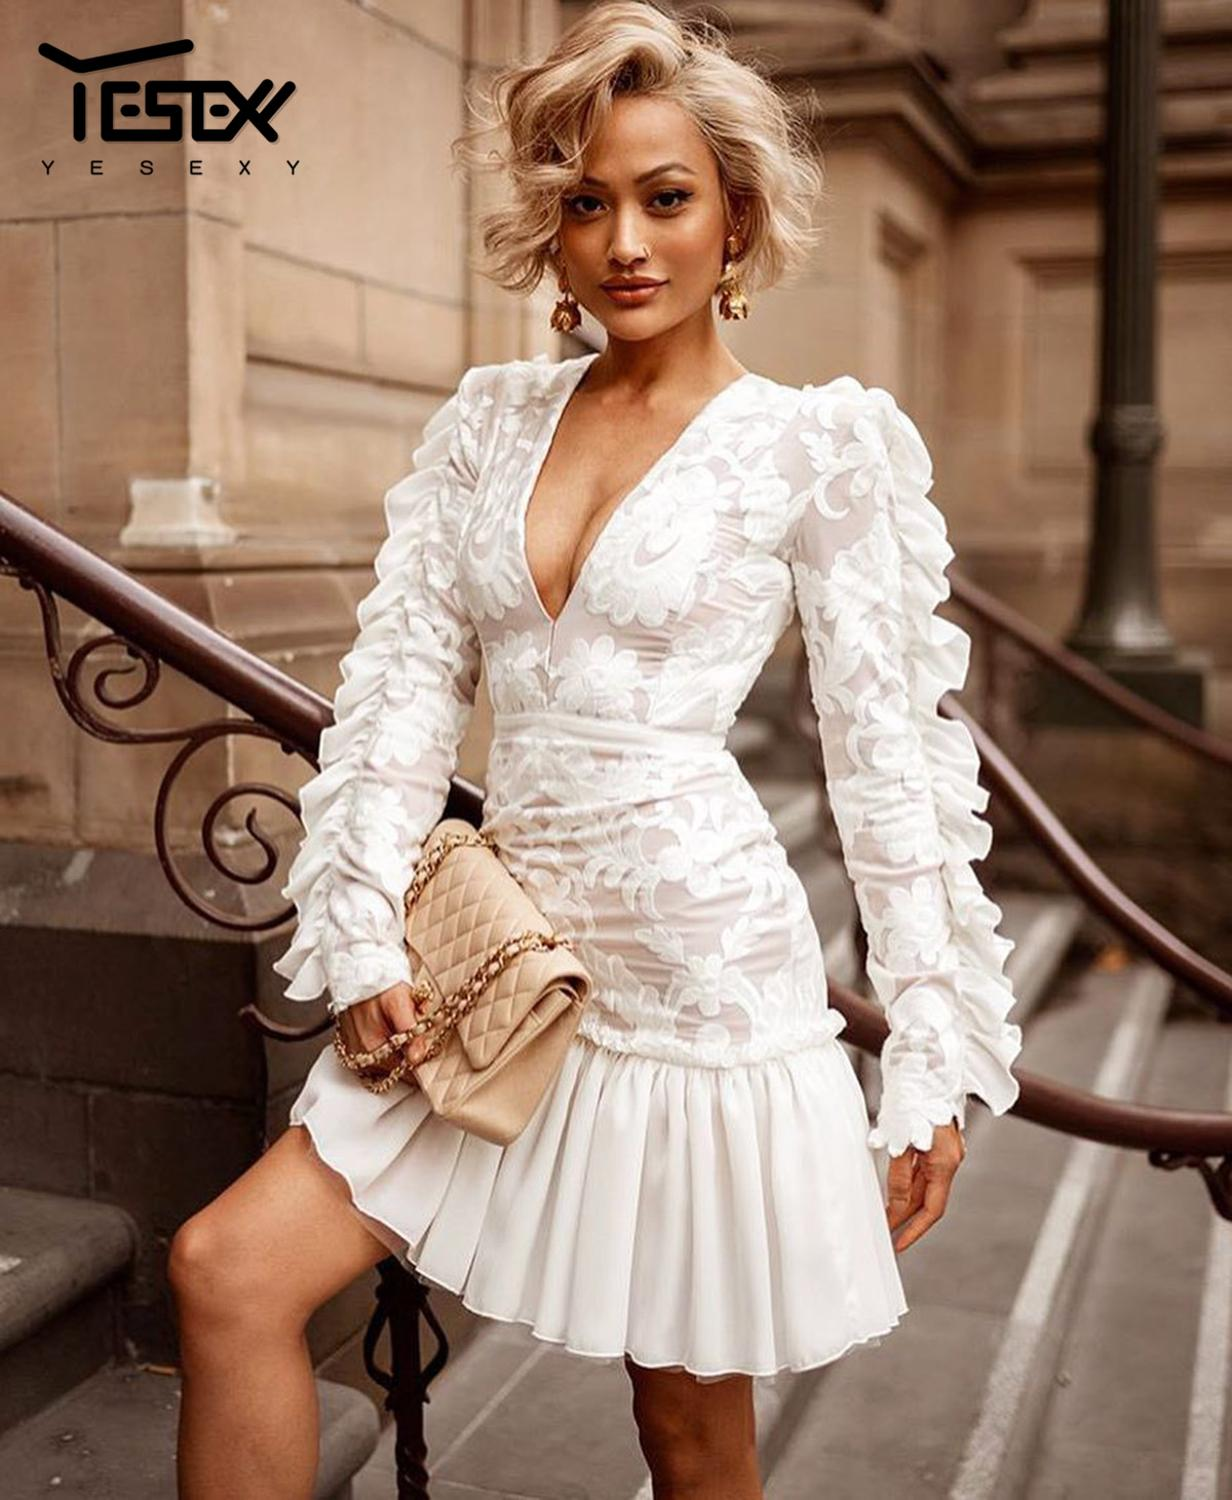 Yesexy 2020 Autumn <font><b>Deep</b></font> <font><b>V</b></font> Neck <font><b>Sexy</b></font> Women <font><b>Dress</b></font> Ruffles Flower Embroidery Long Sleeve Elegant Women Mini <font><b>Dresses</b></font> VR1175 image